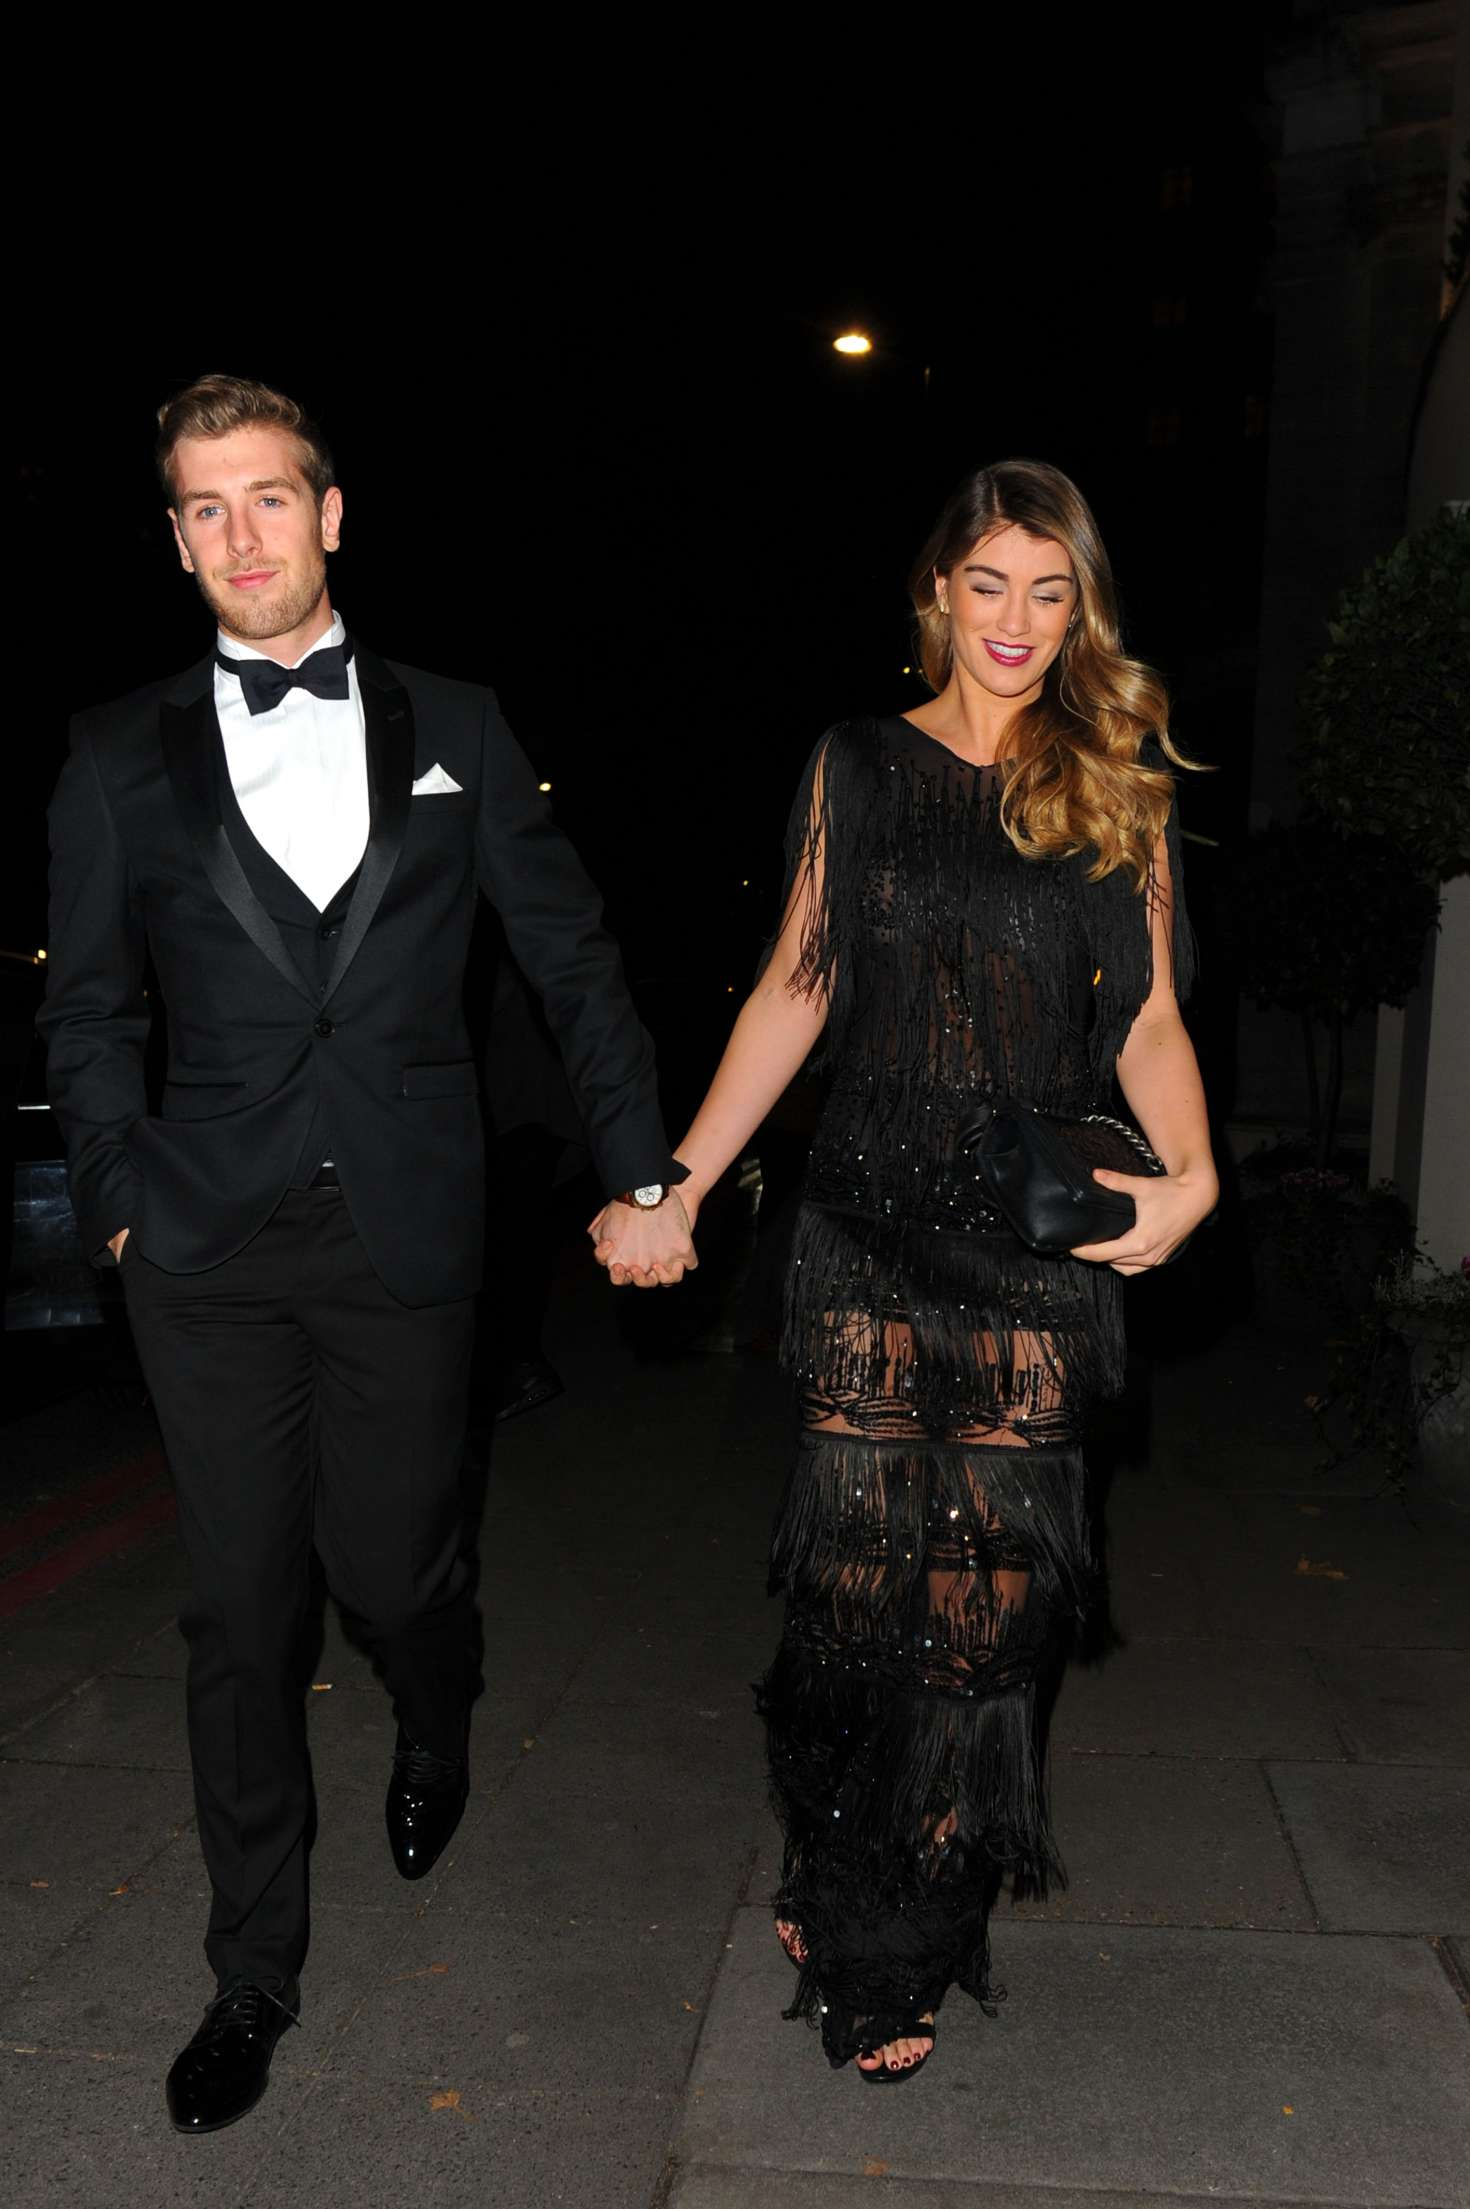 Amy Willerton 2016 : Amy Willerton: Chain Of Hope Annual Gala Ball 2016 -12